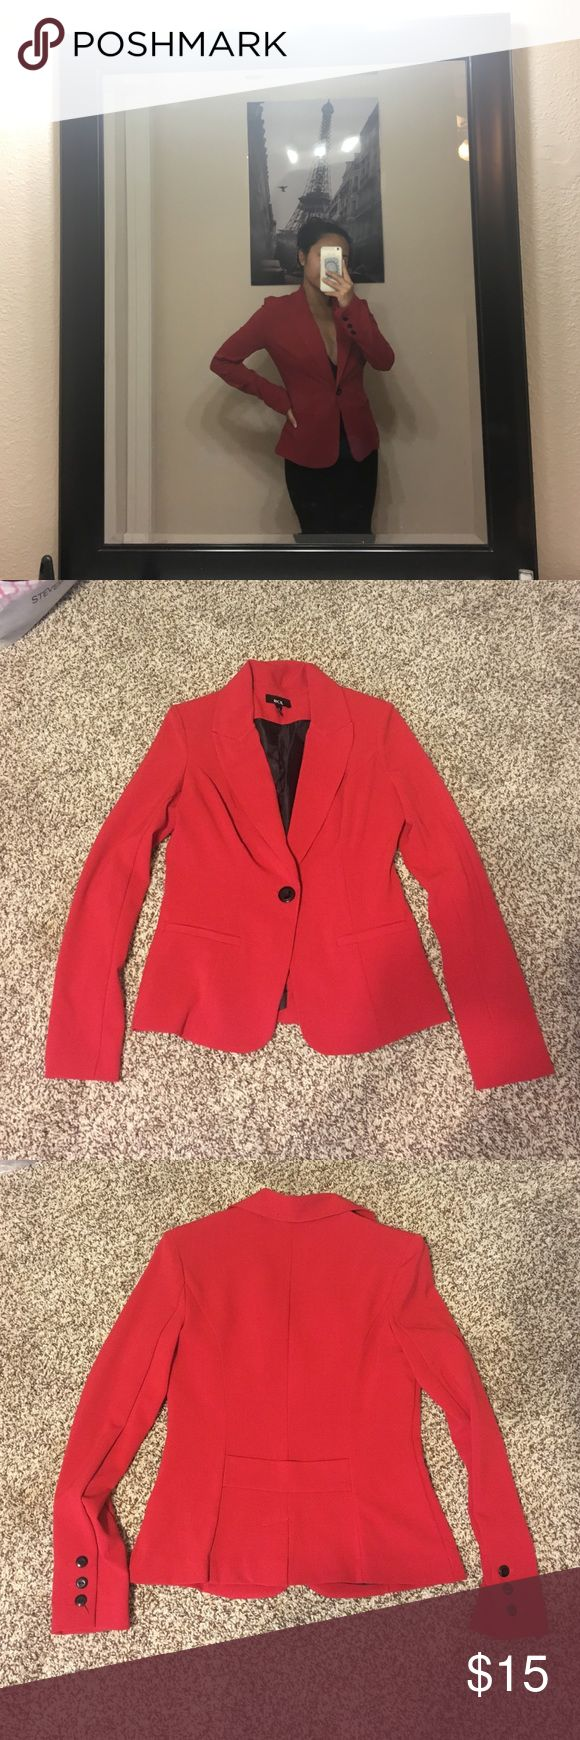 Red Blazer Red shoulder padded blazer with 3 black sleeve buttons. Perfect to wear and match everyday work outfit. Worn only once since my shoulders are too broad for it. BCX Jackets & Coats Blazers